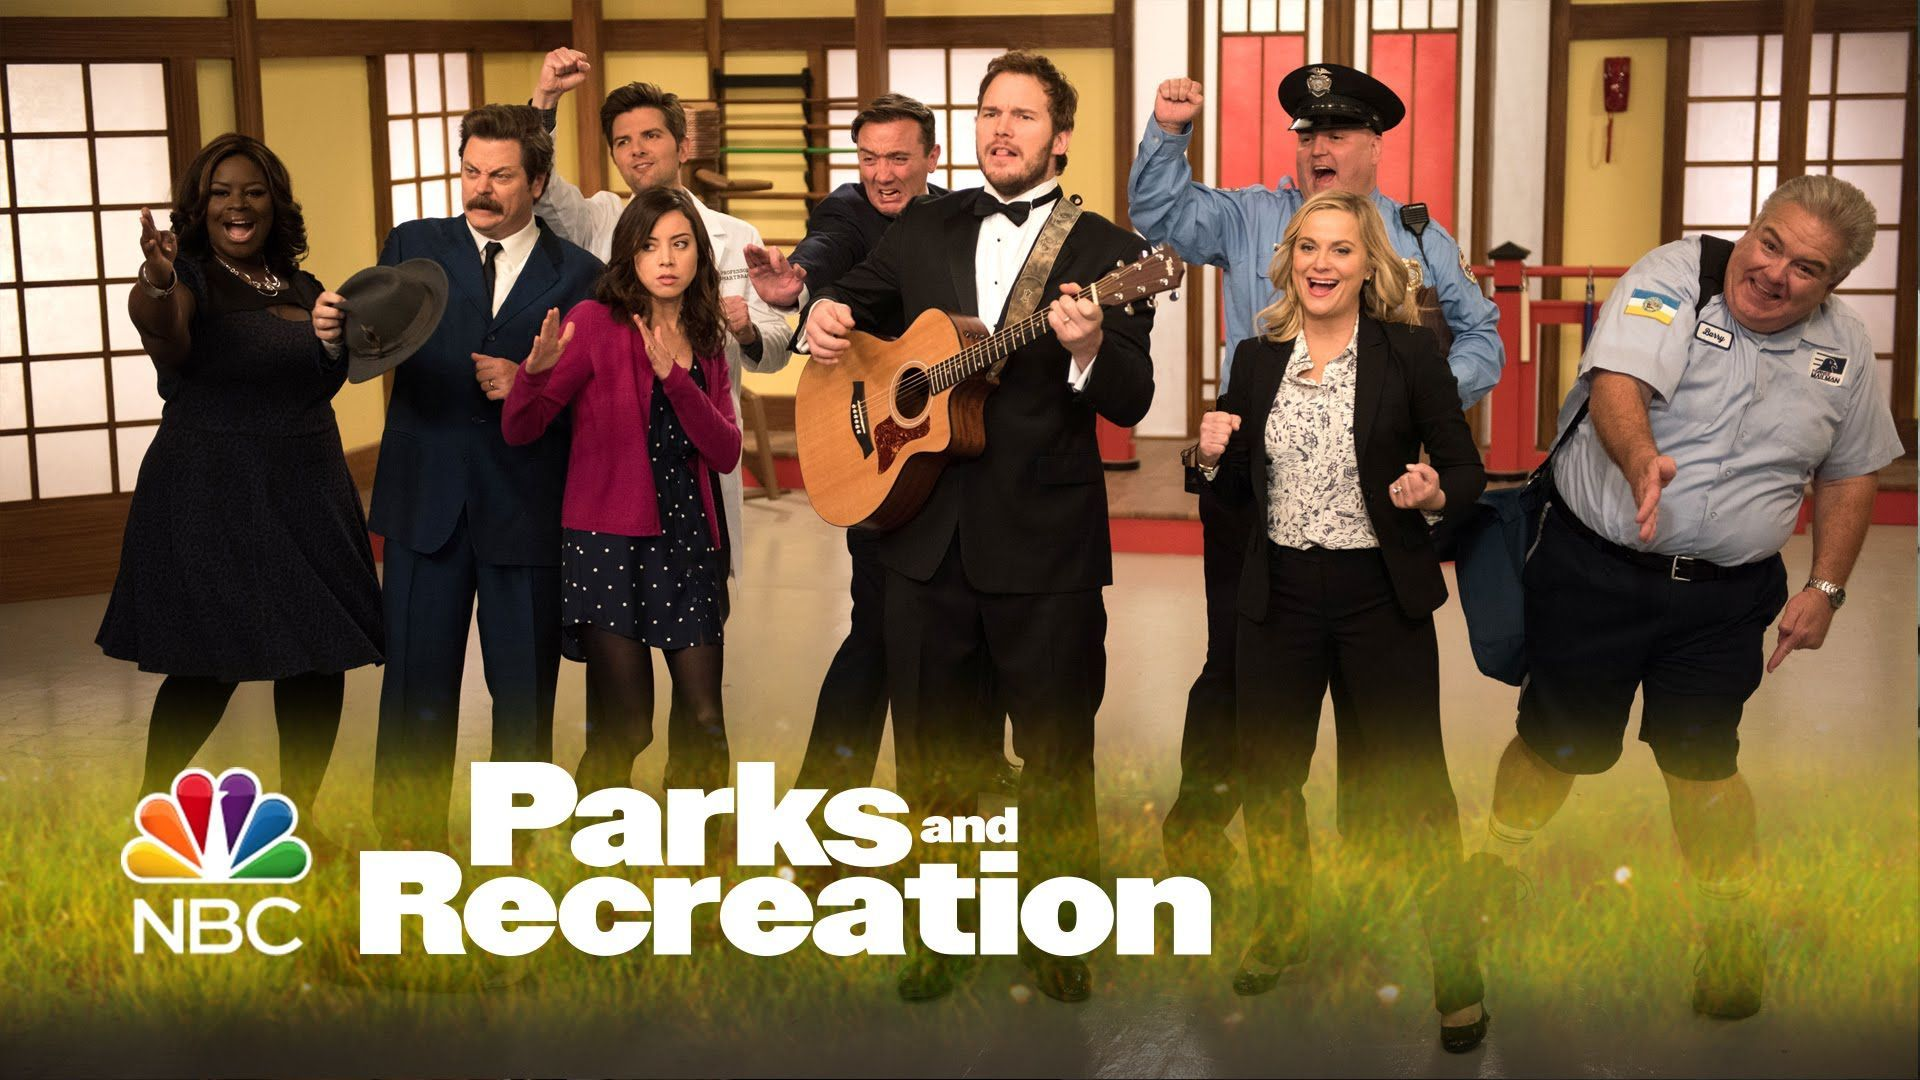 Parks And Recreation Wallpapers Top Free Parks And Recreation